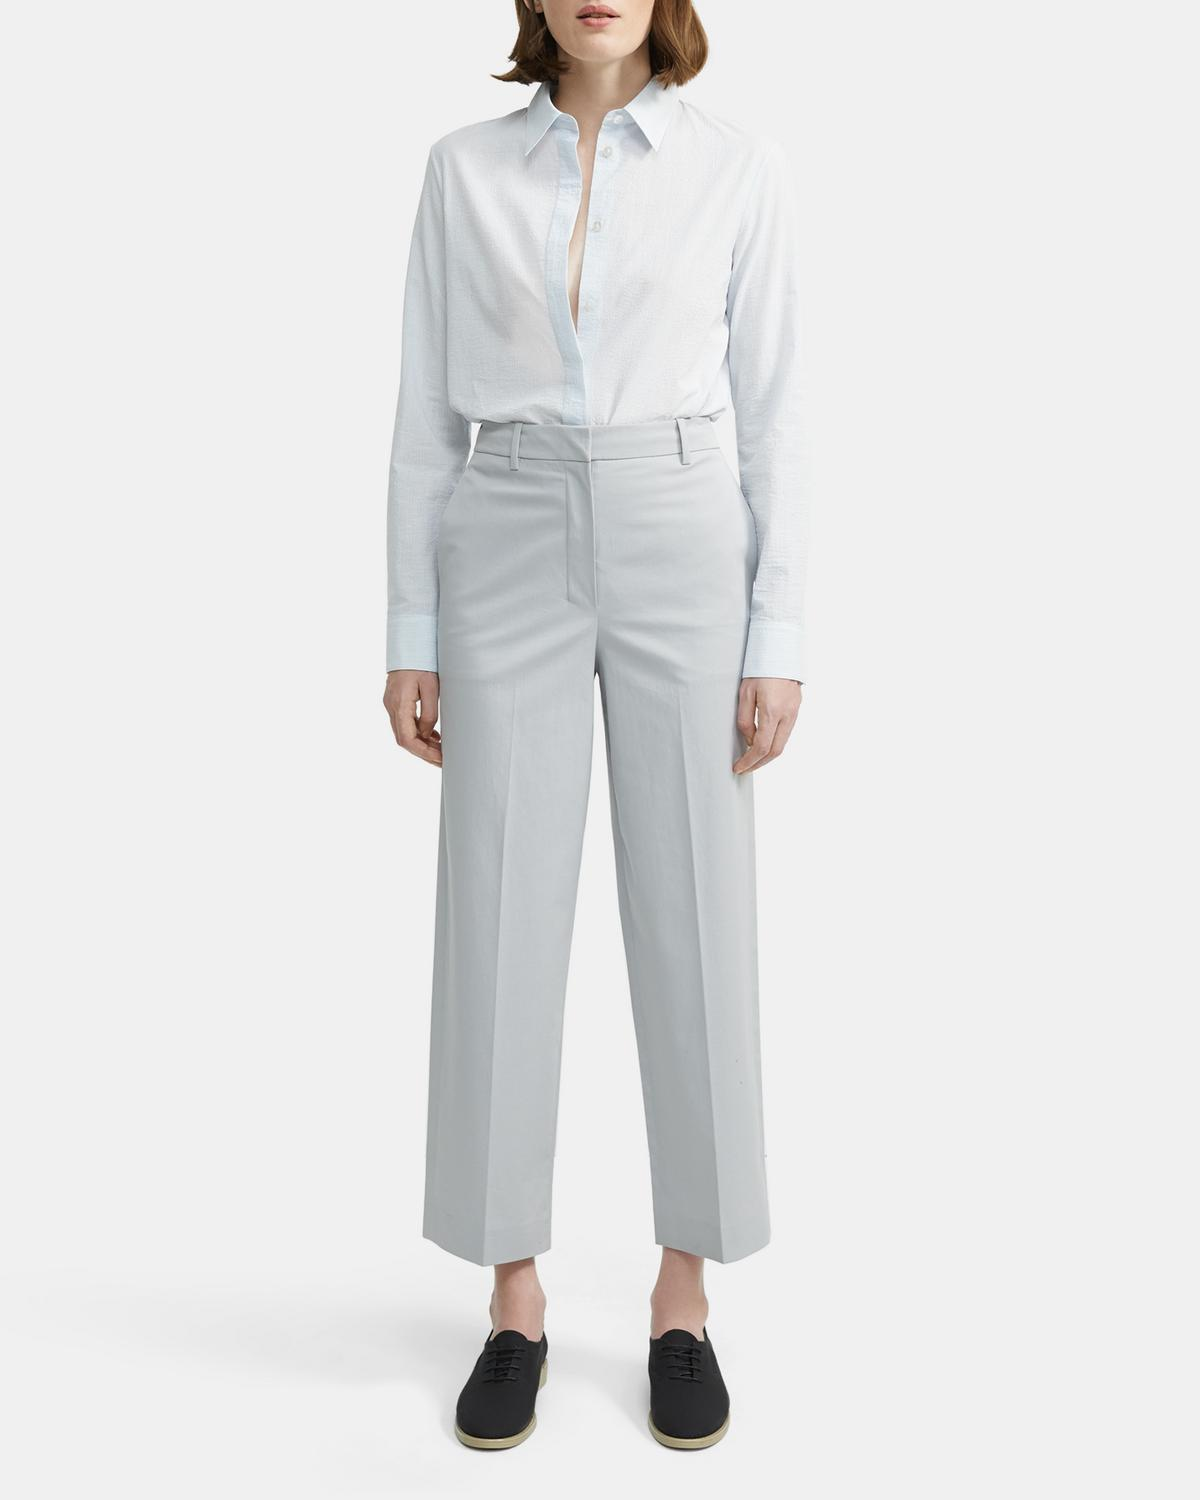 Stretch Chino High-Waisted Straight Trouser